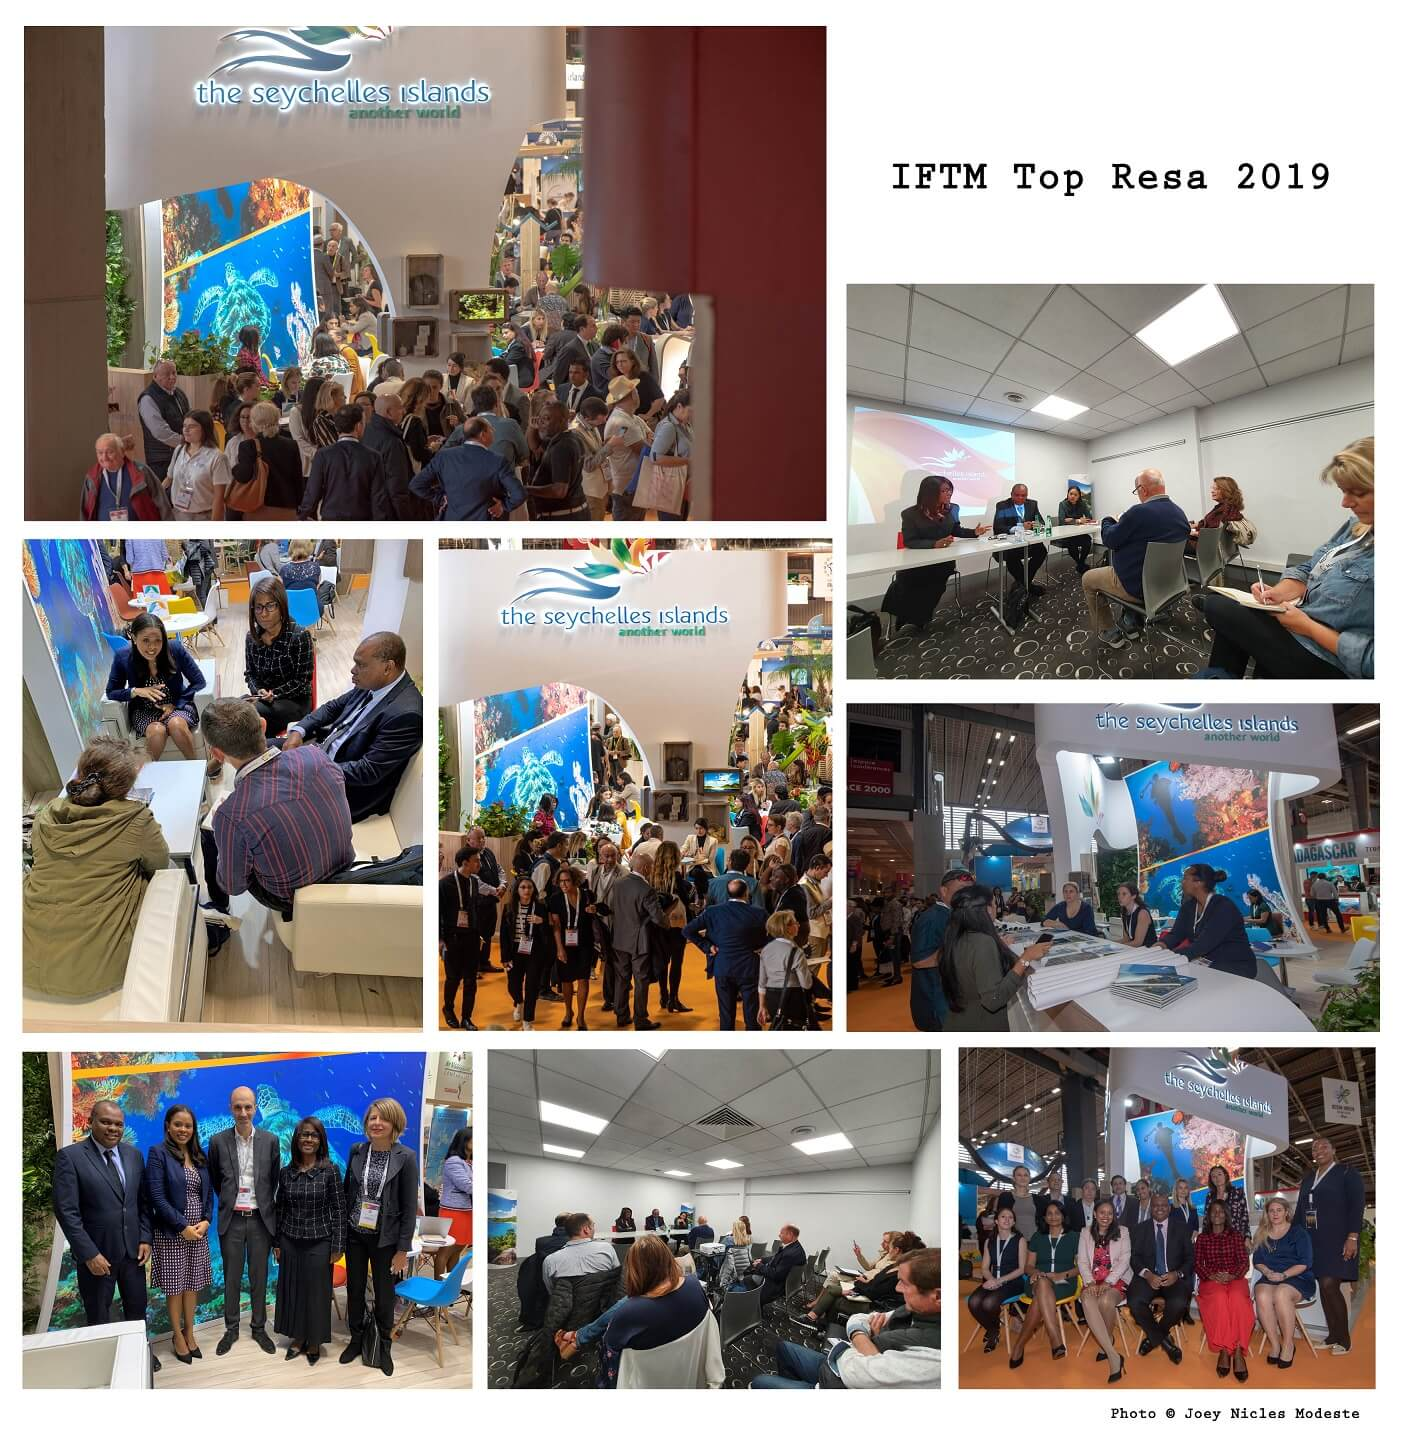 Eventful 3 days for Seychelles delegation led by Tourism Minister at IFTM Top Resa 2019